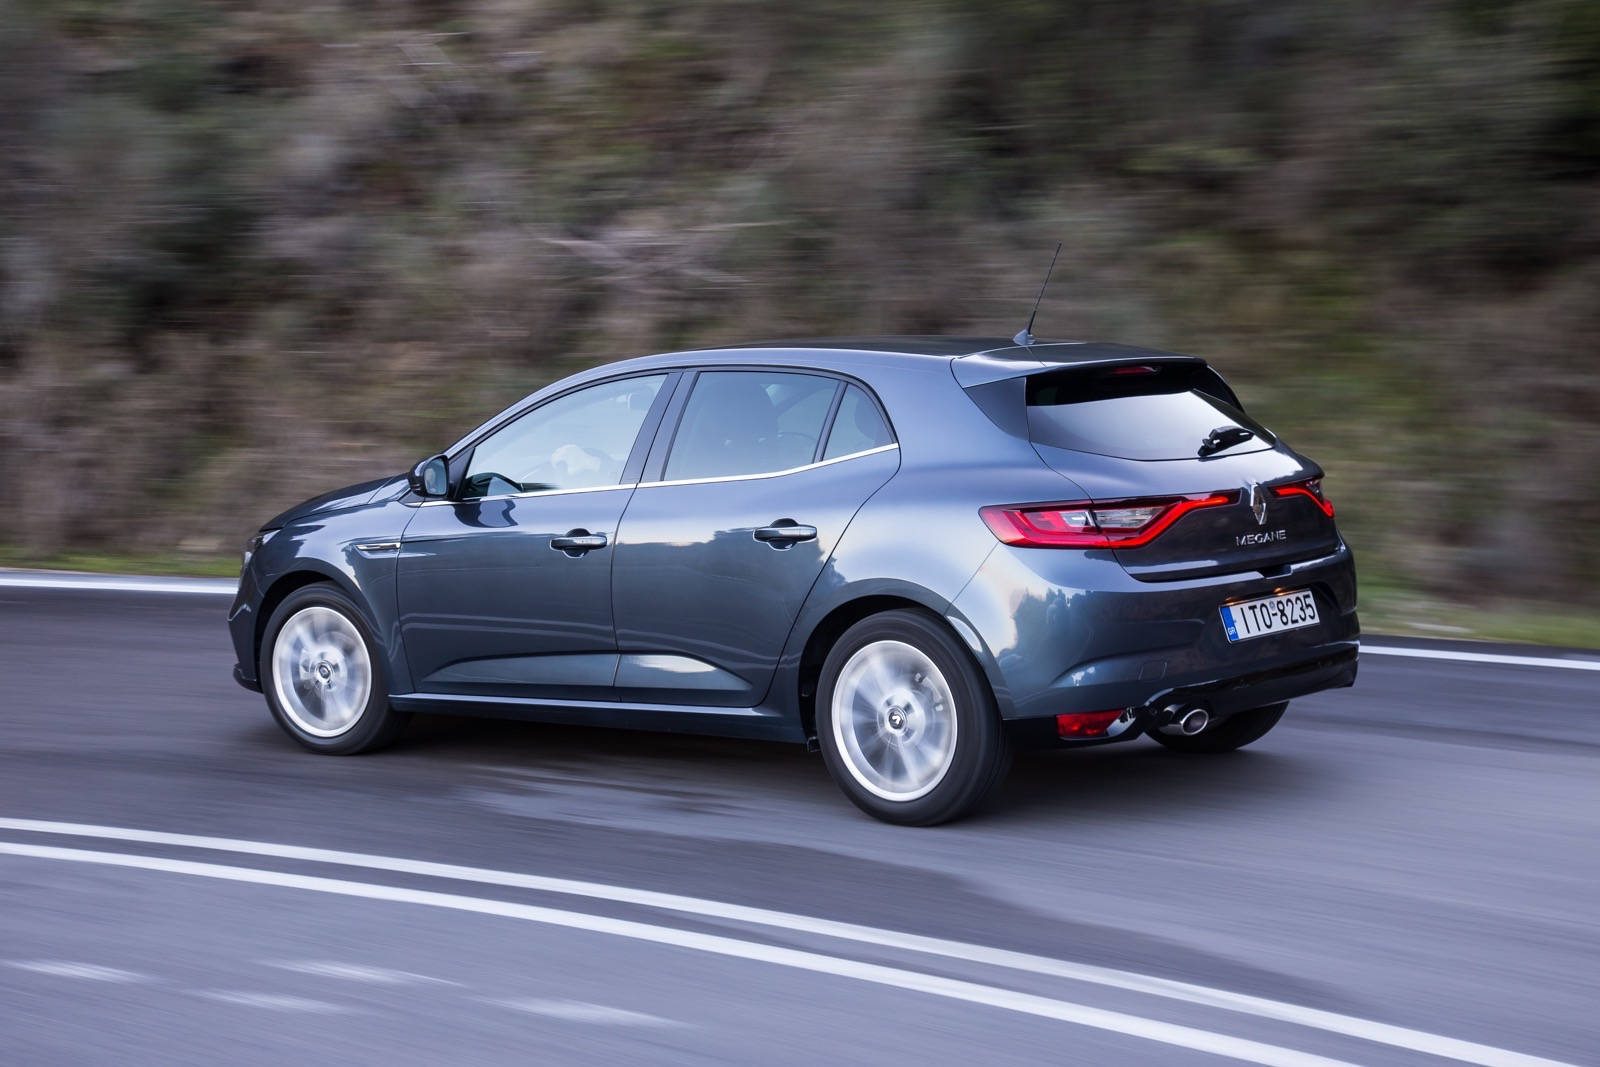 First_Drive_Renault_Megane_121